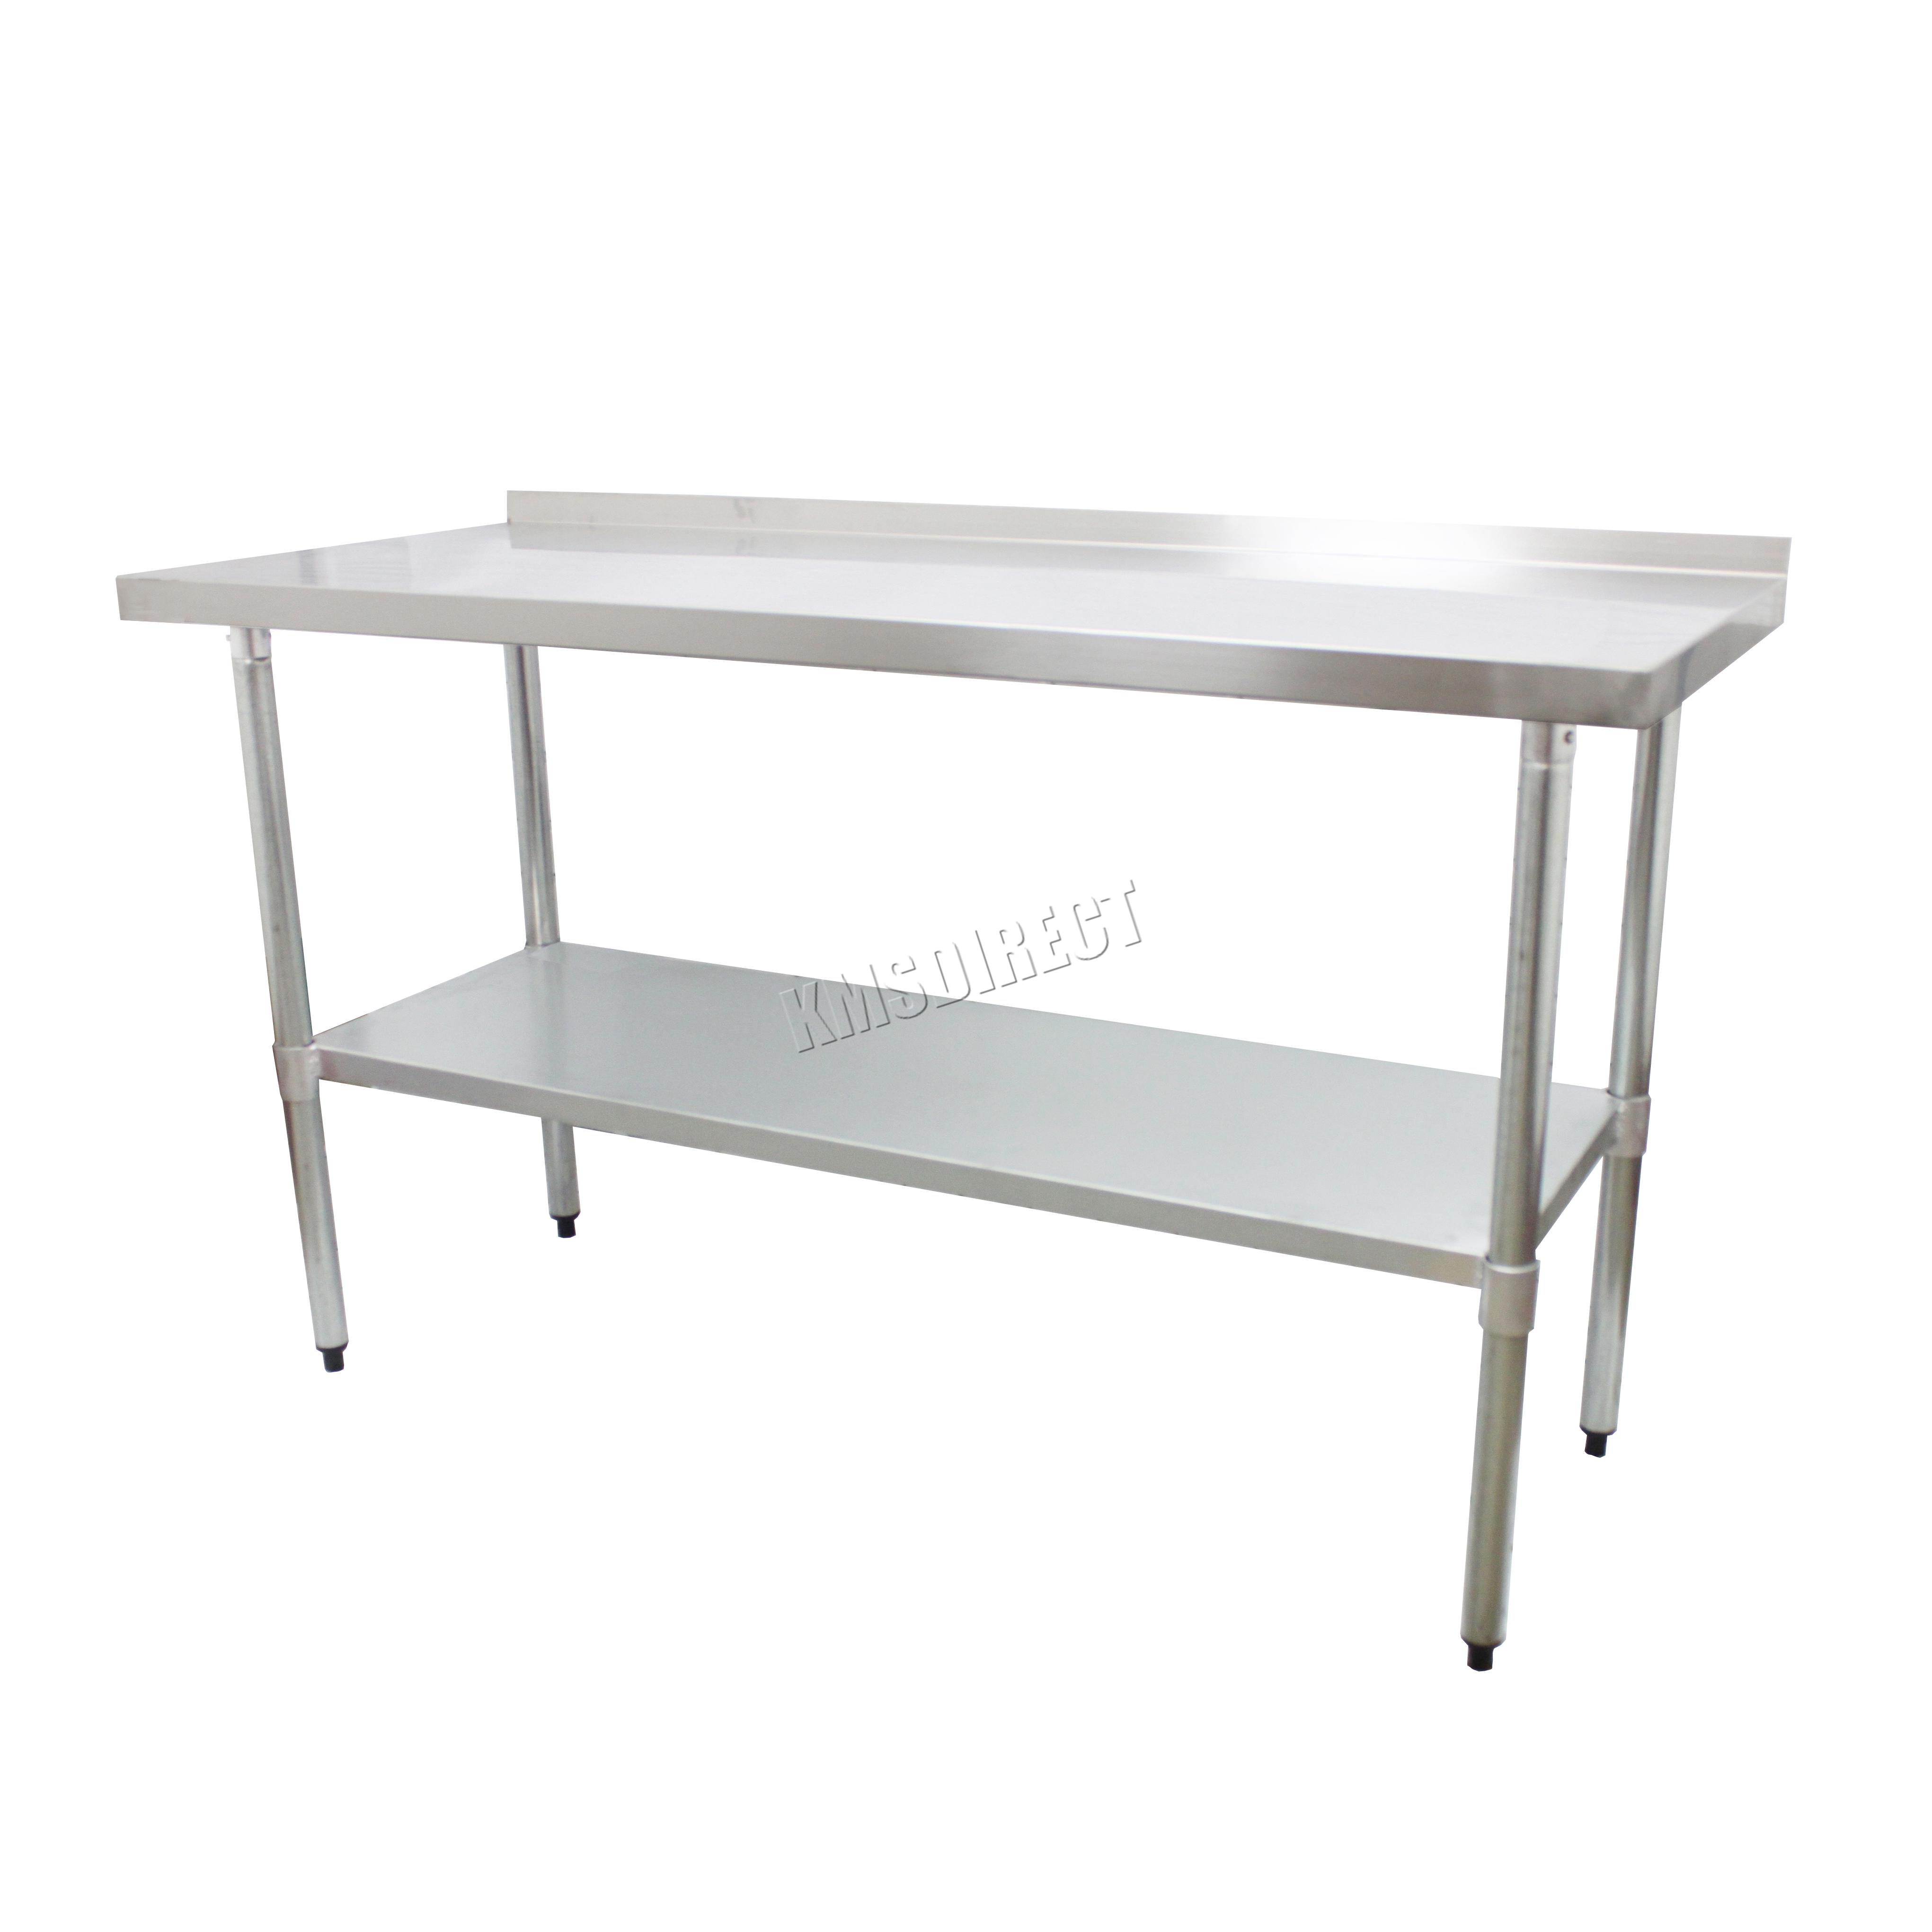 Stainless Steel Kitchen Benches: WestWood Stainless Steel Commercial Catering Table Work